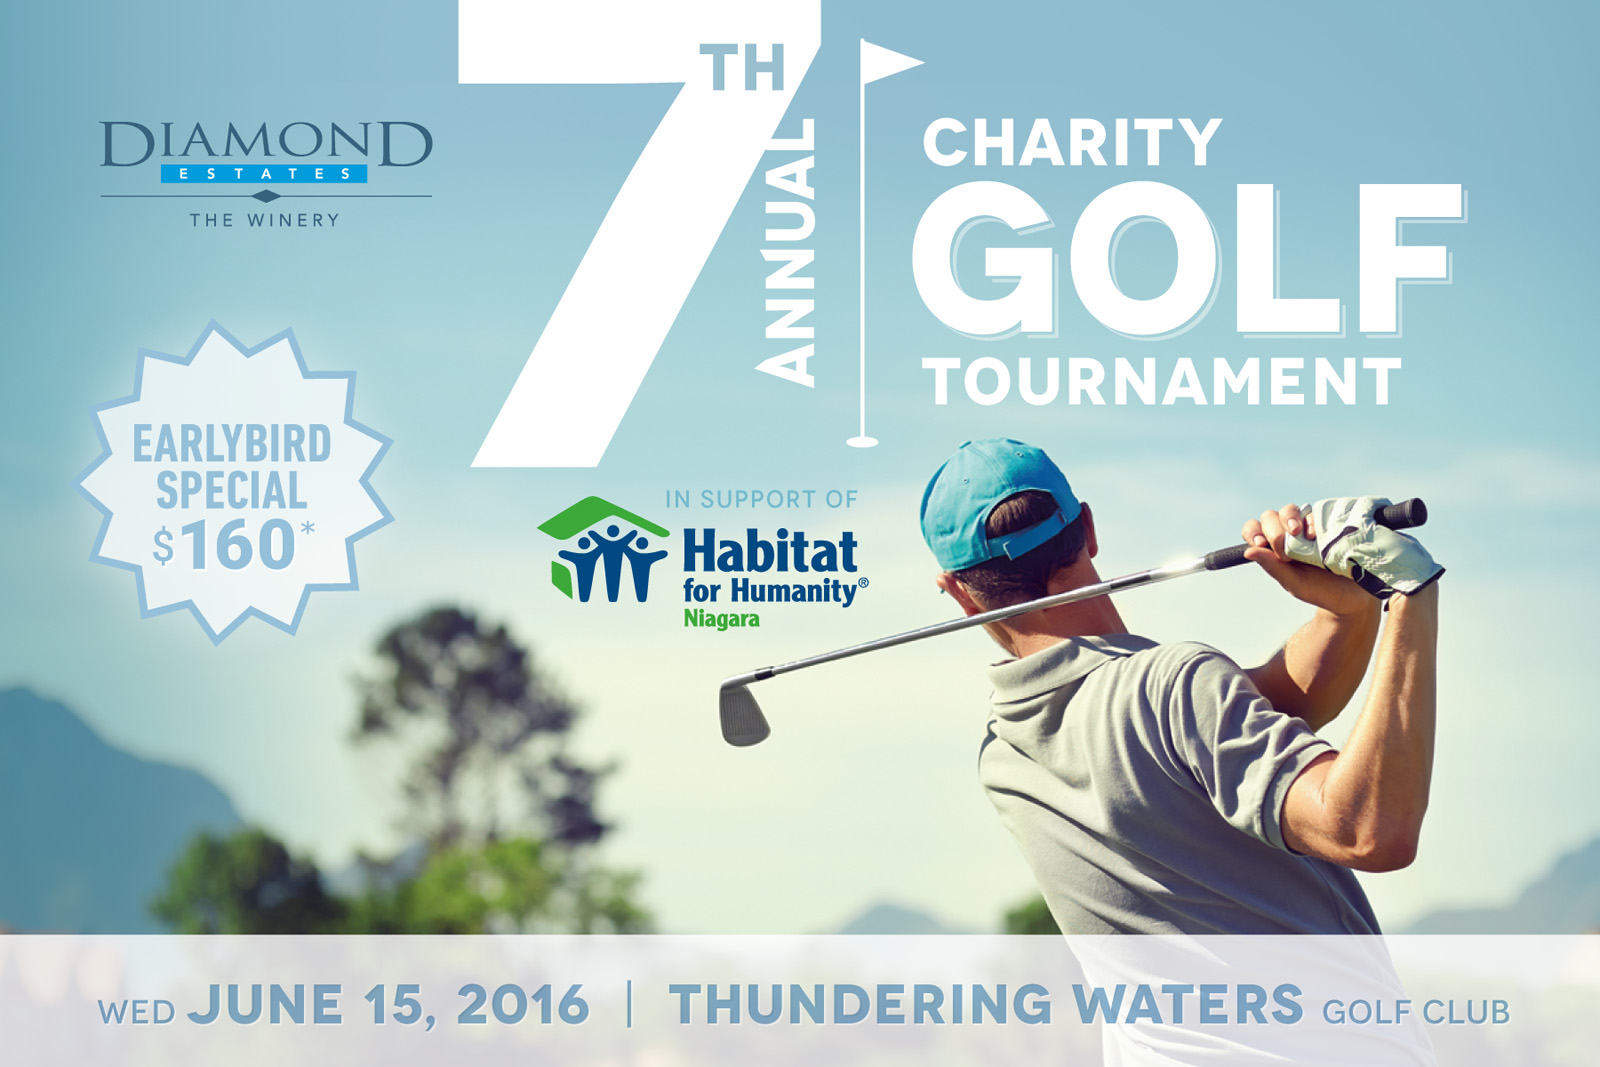 golf tournament, niagara, habitat for humanity